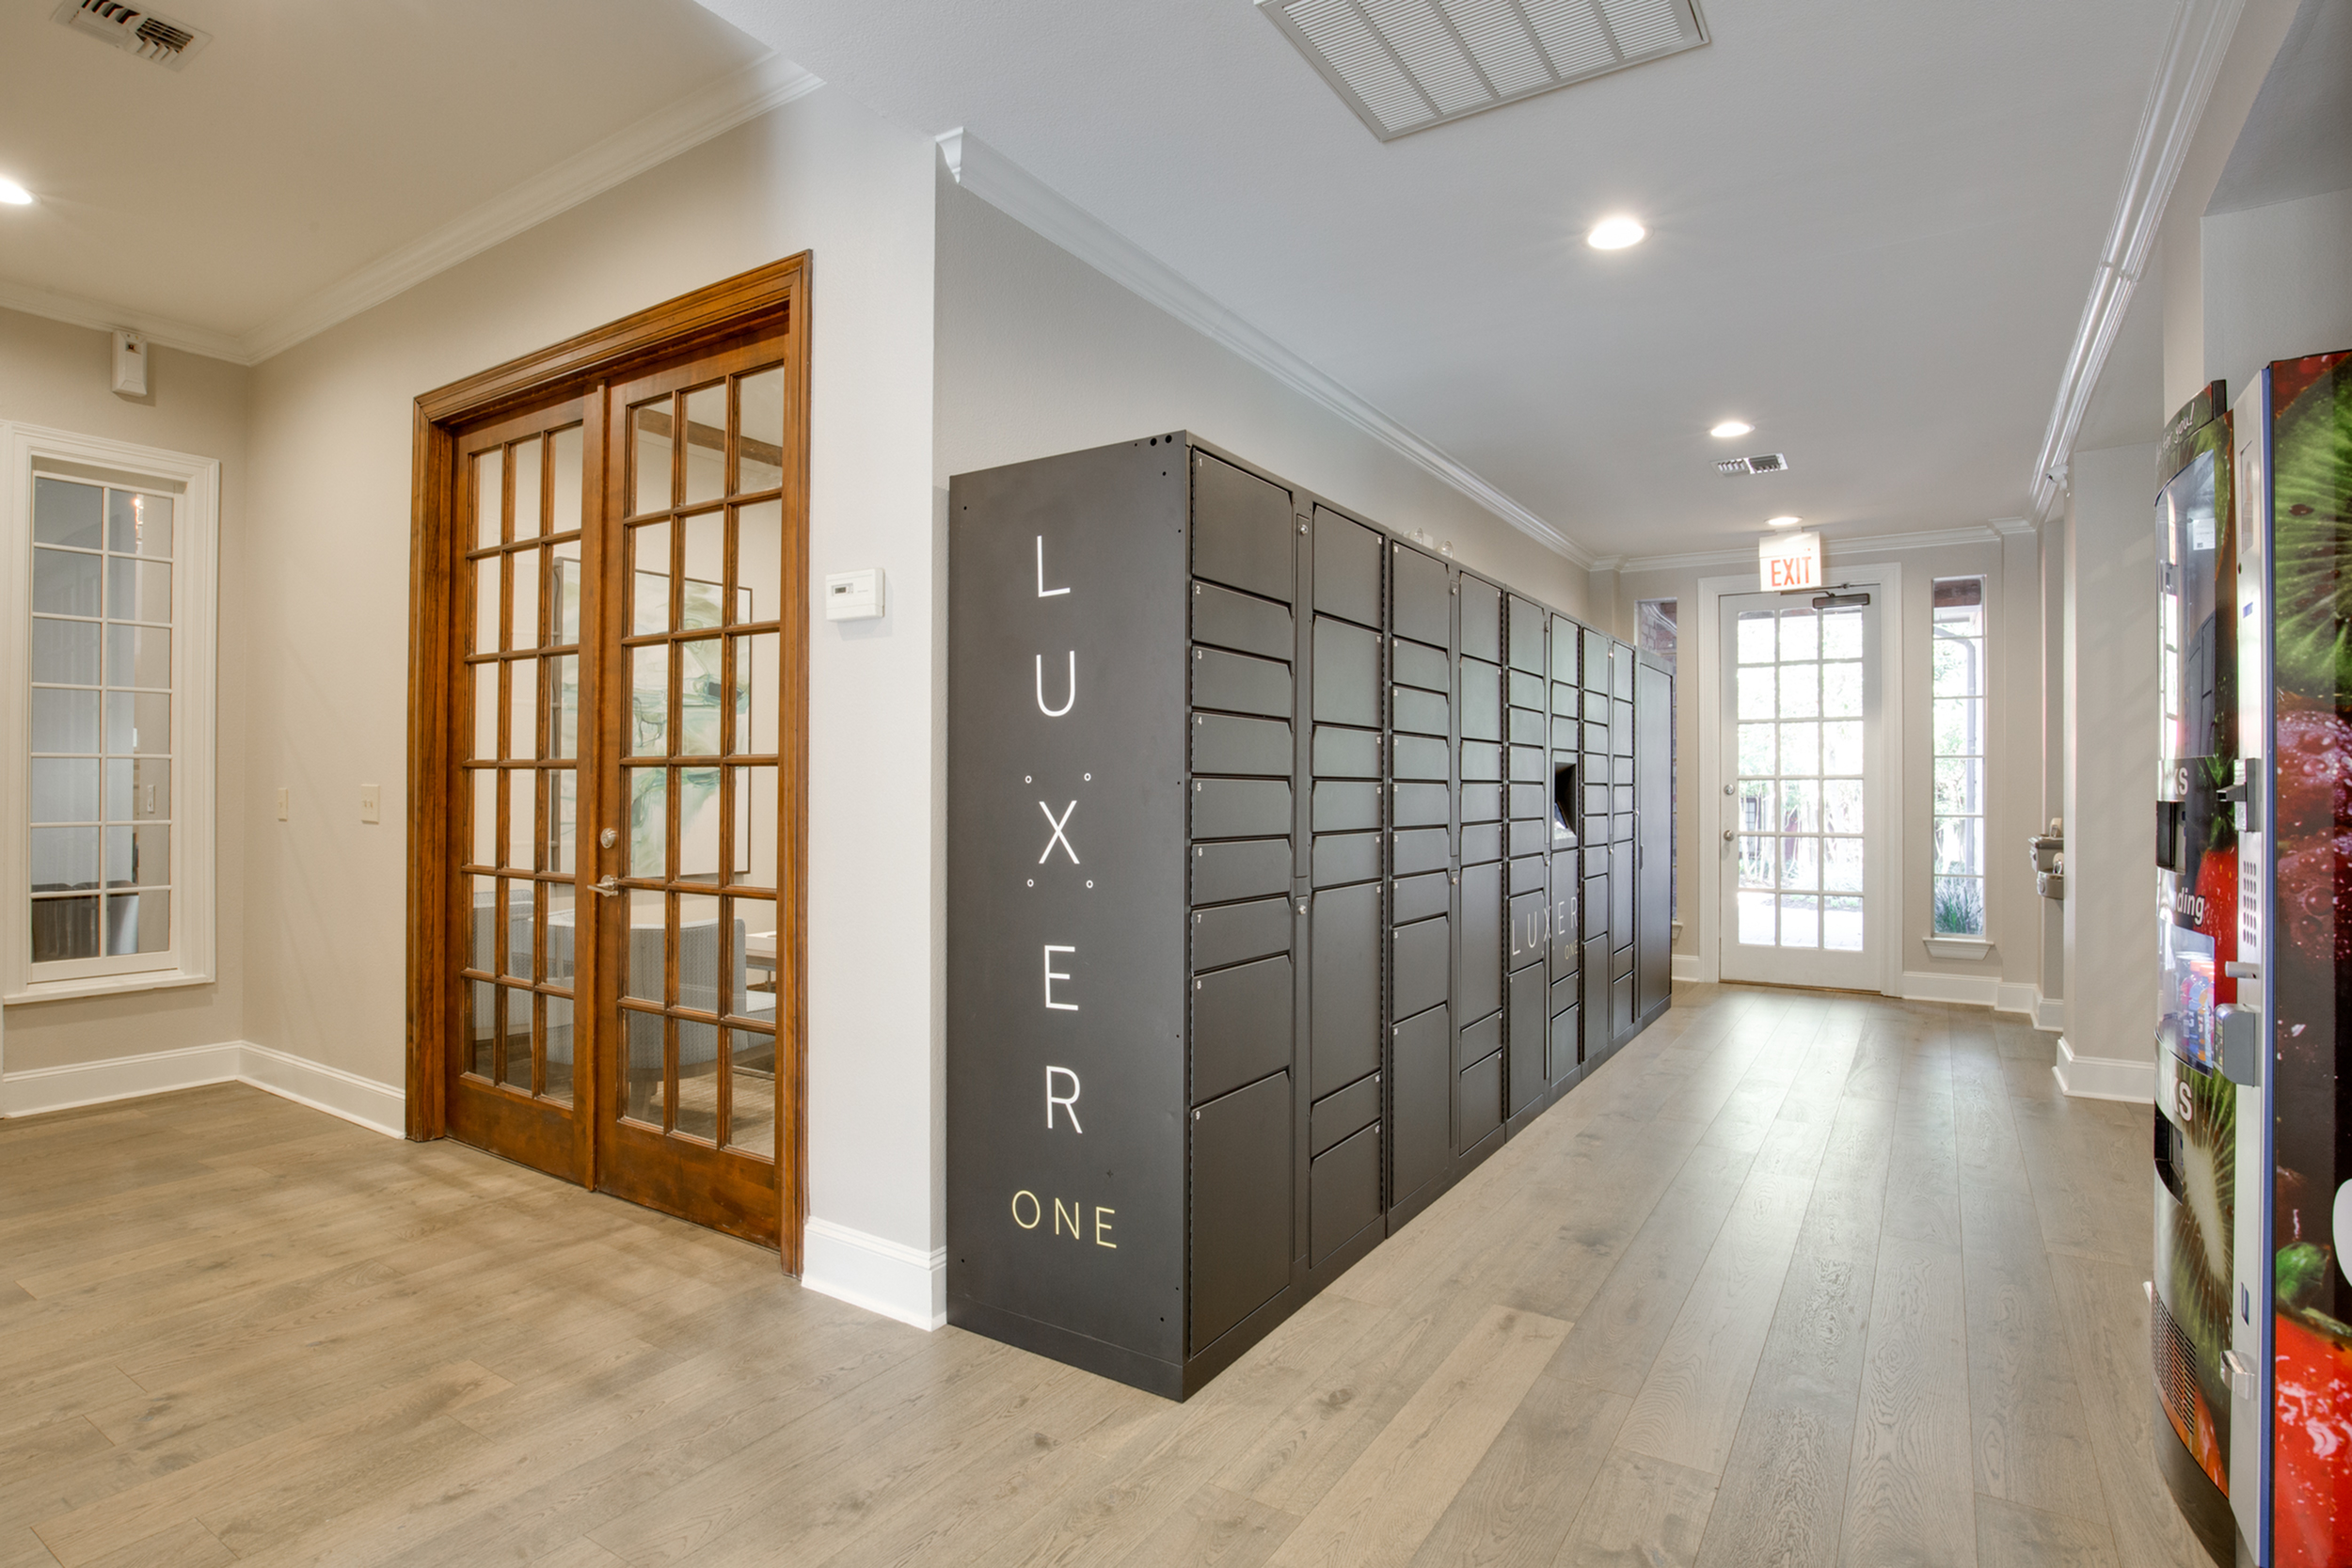 Image of Luxer One Package Lockers for Raveneaux